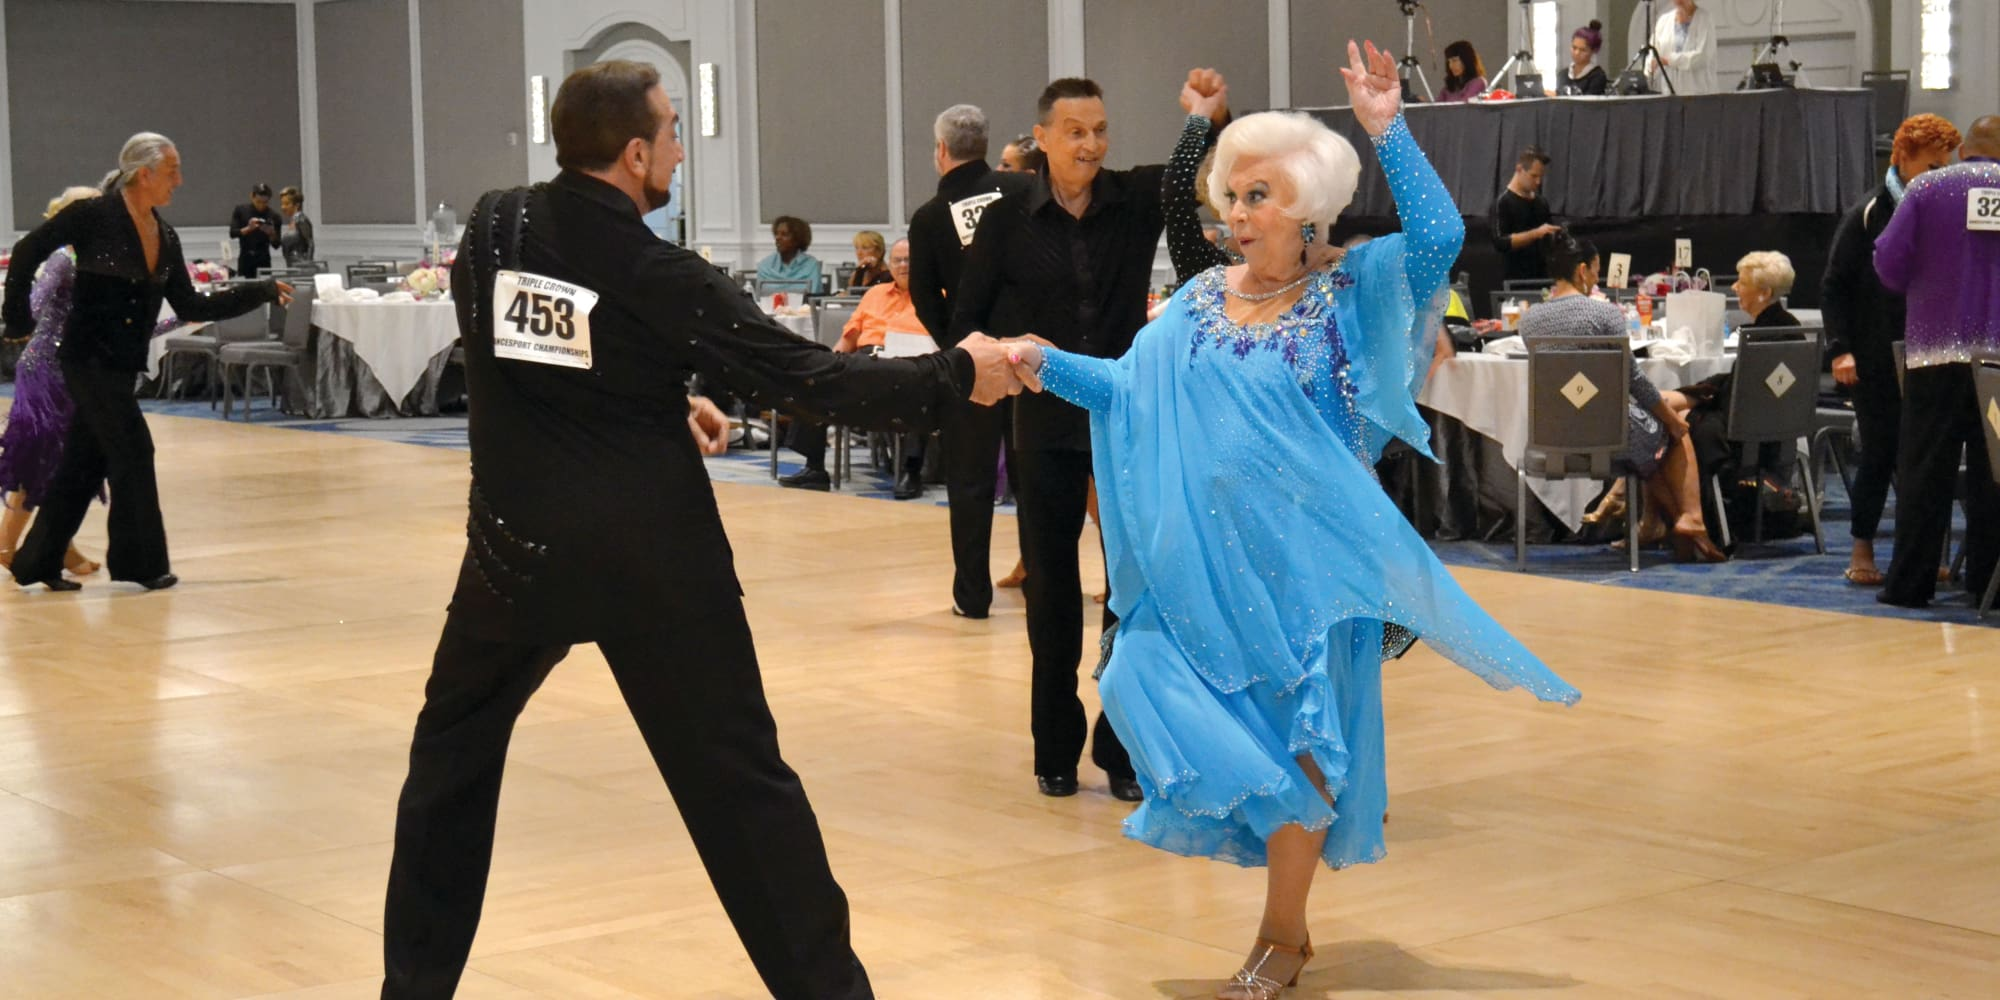 Two residents dancing for a competition at Cypress Springs Gracious Retirement Living in Bradenton, Florida